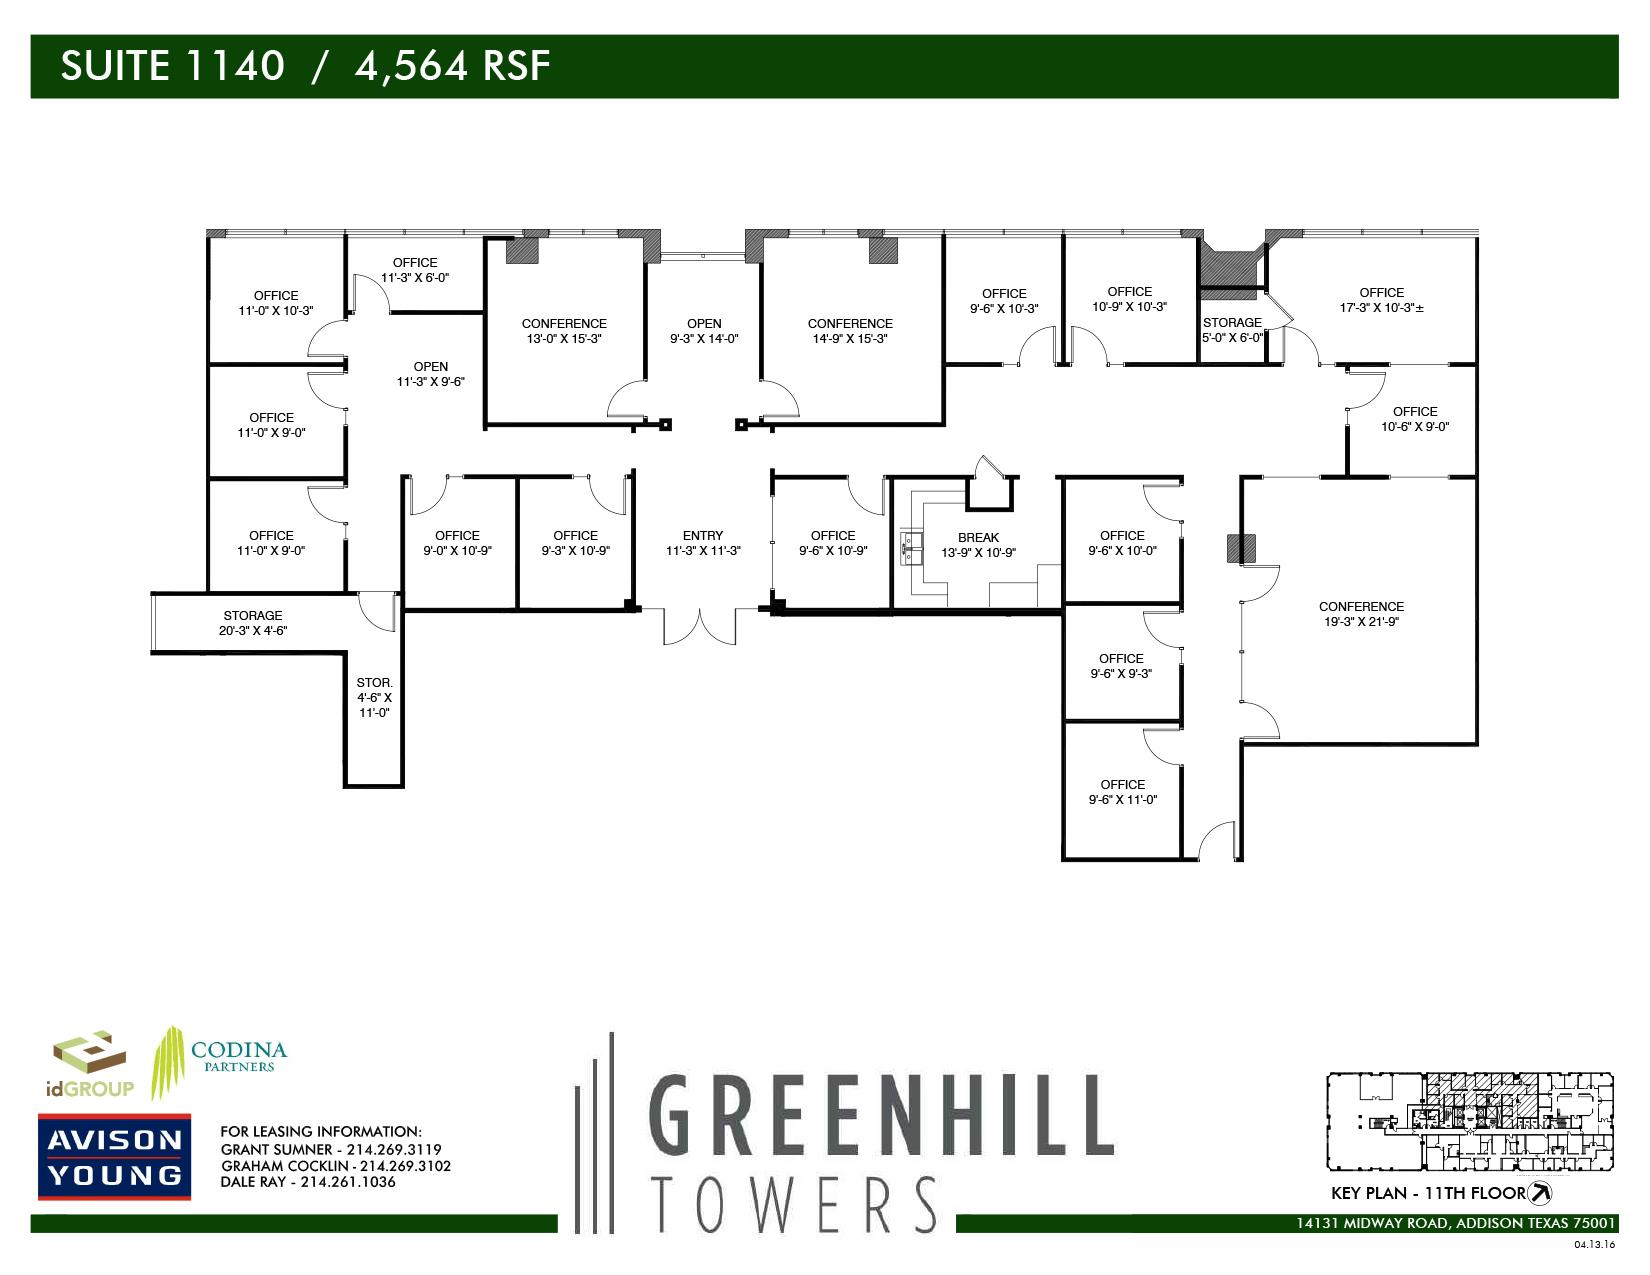 Greenhill Towers | Codina Partners - Suite 1140